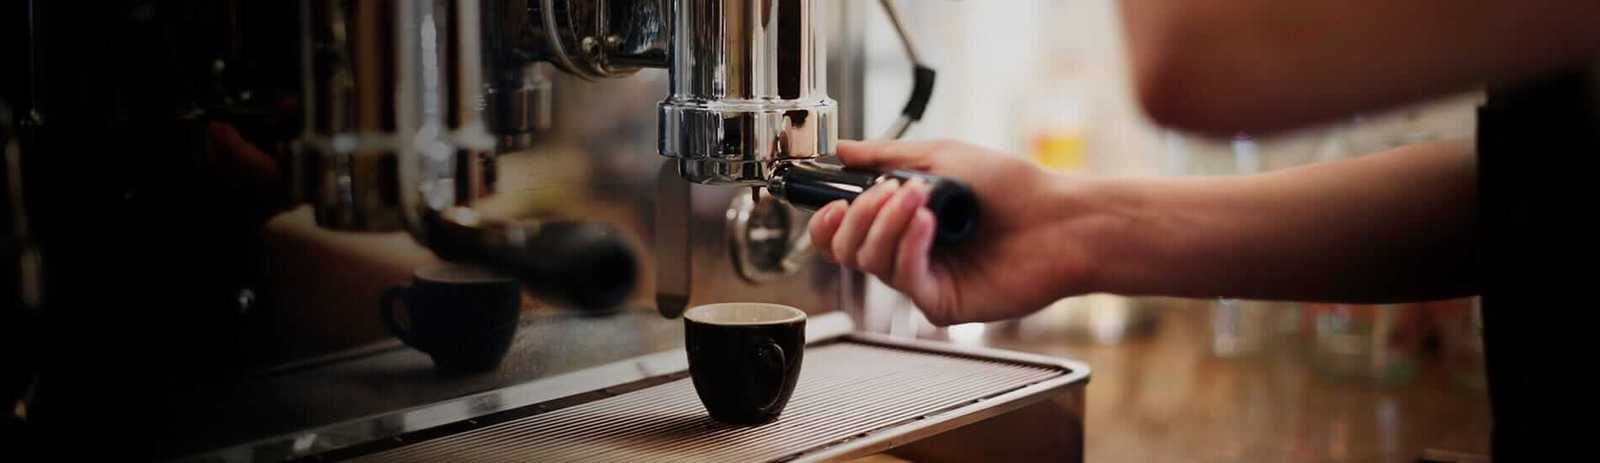 How To Find The Best Large Coffee Machine For Businesses